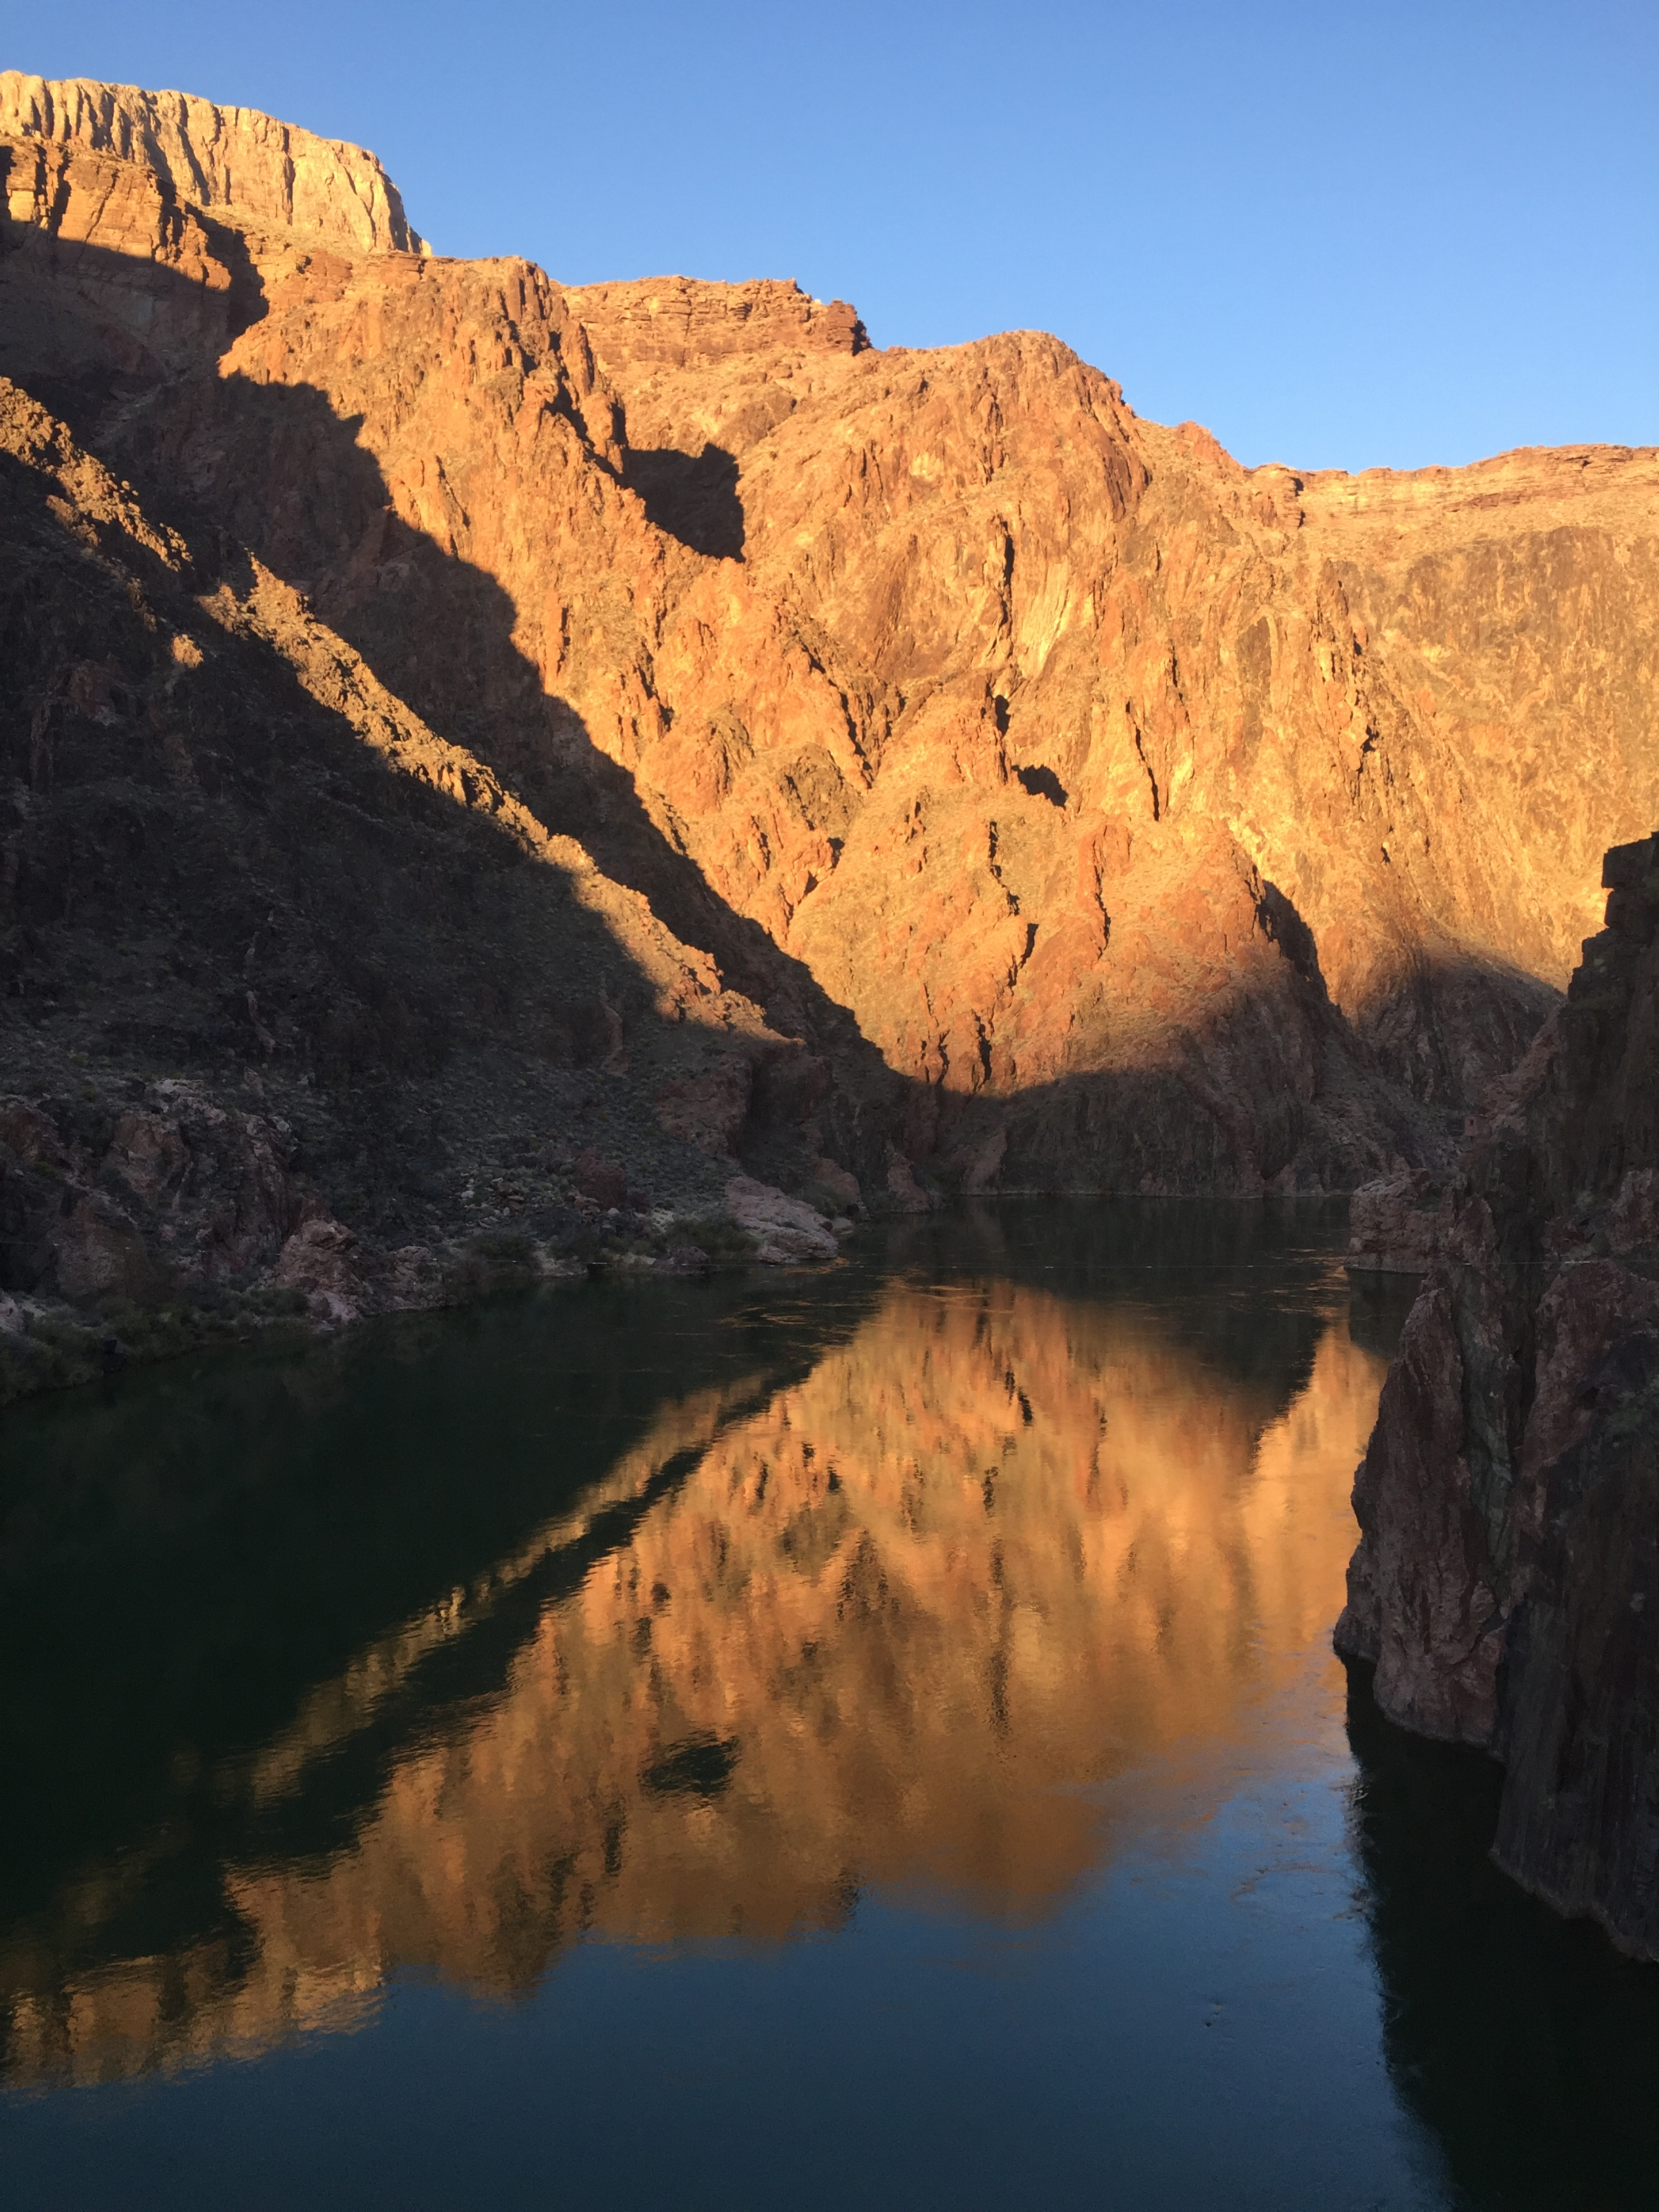 The canyon reflecting in the Colorado River at sunset